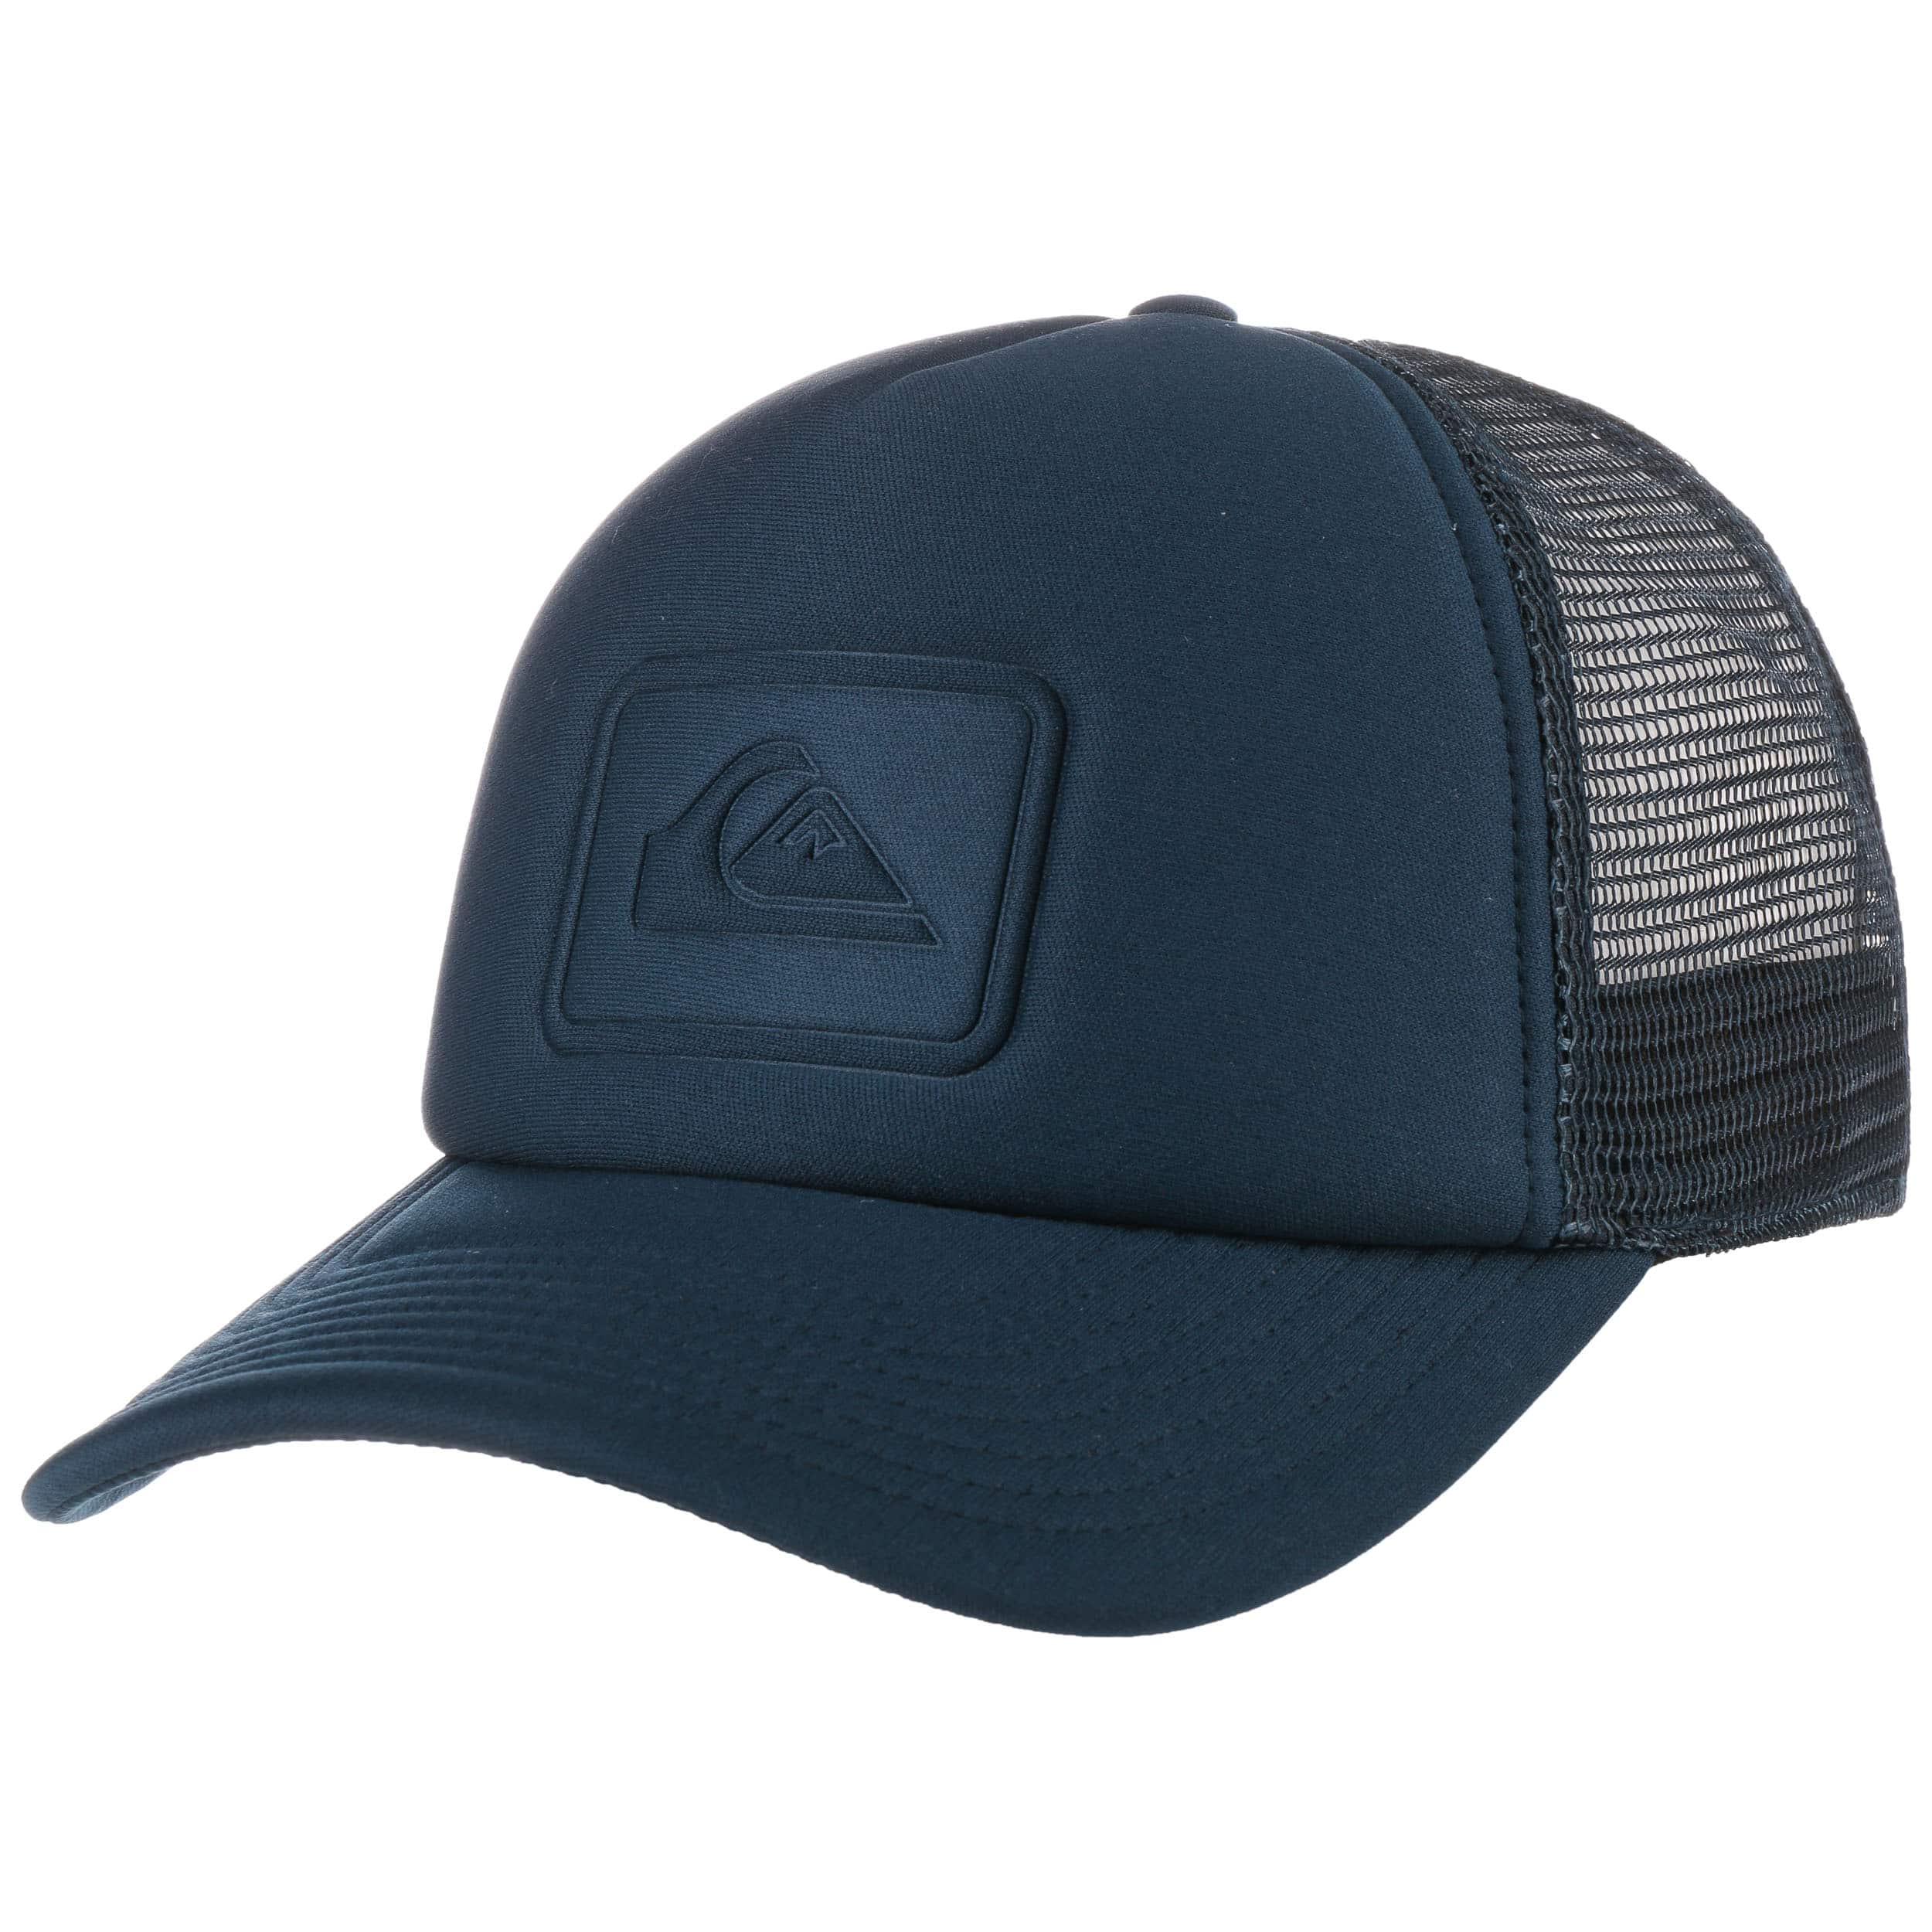 532a19f6 ... inexpensive trucker cap squashed banana youth by quiksilver navy 2  12f3d d5364